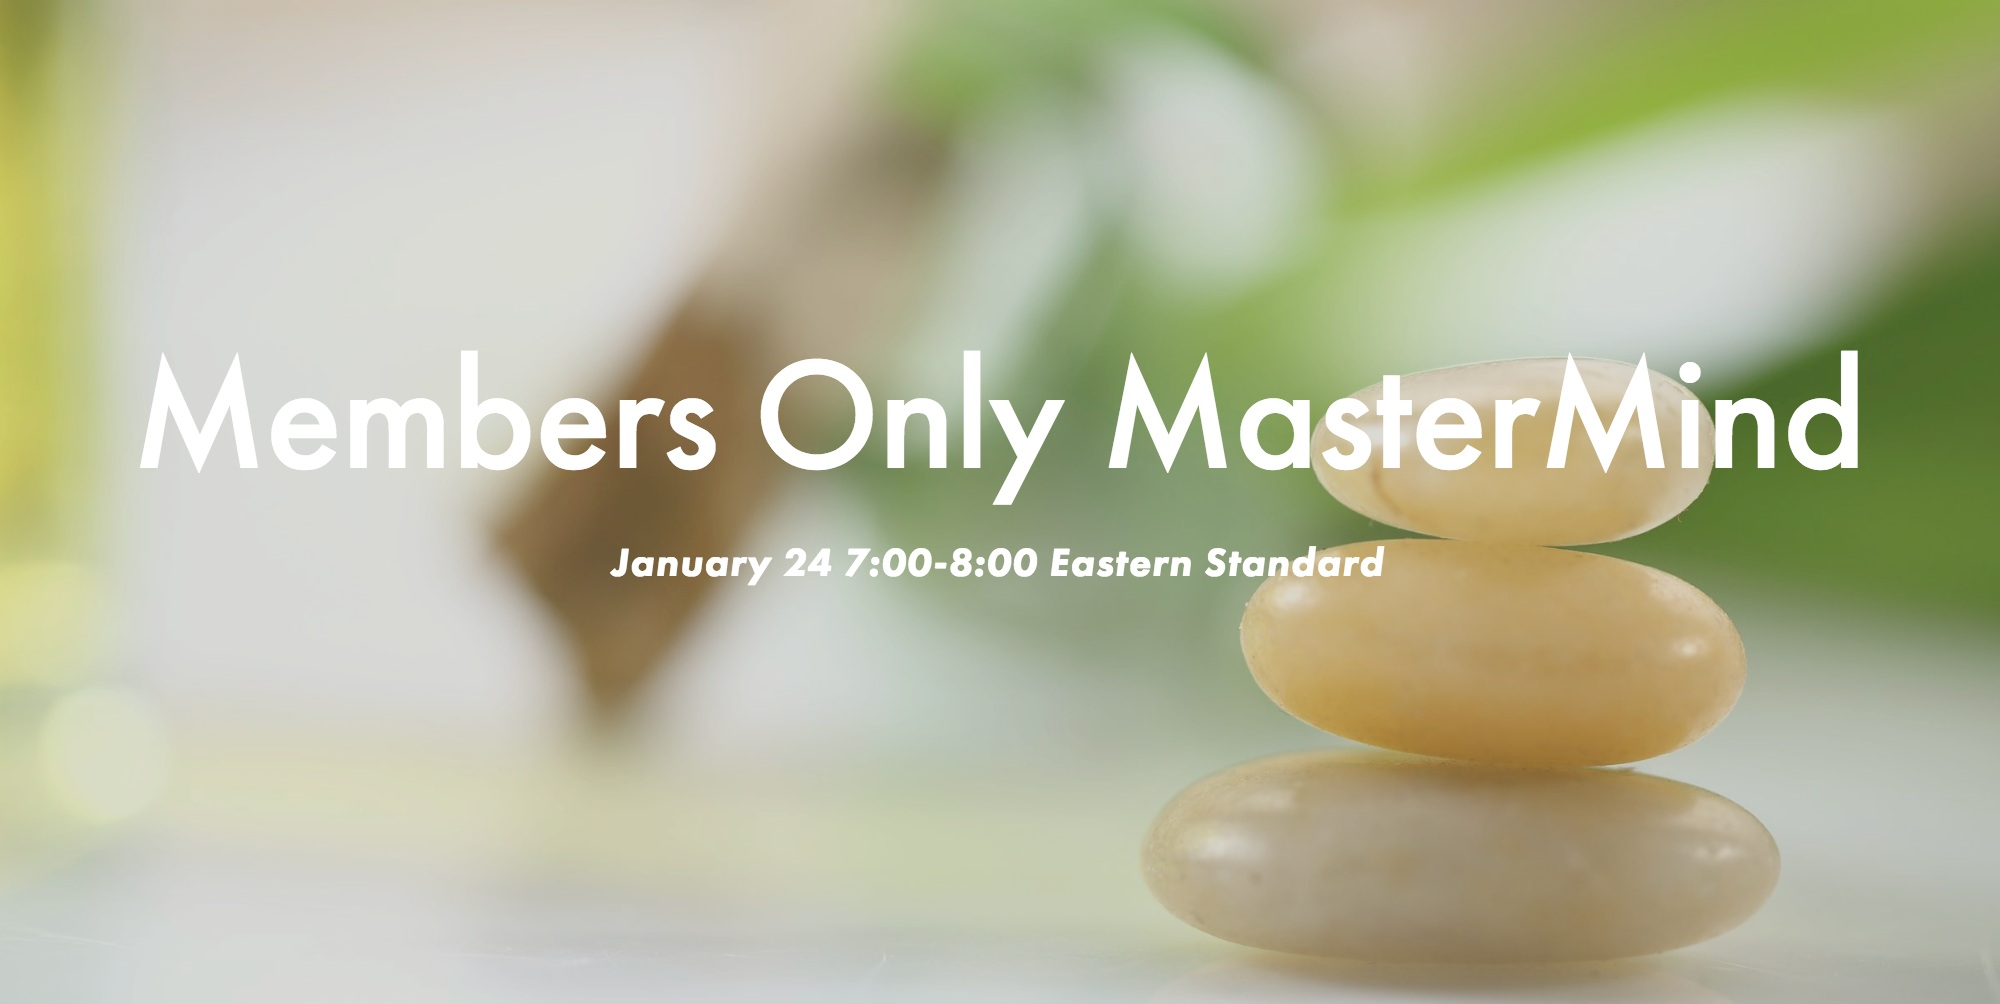 The Life Detox Members Only MasterMind